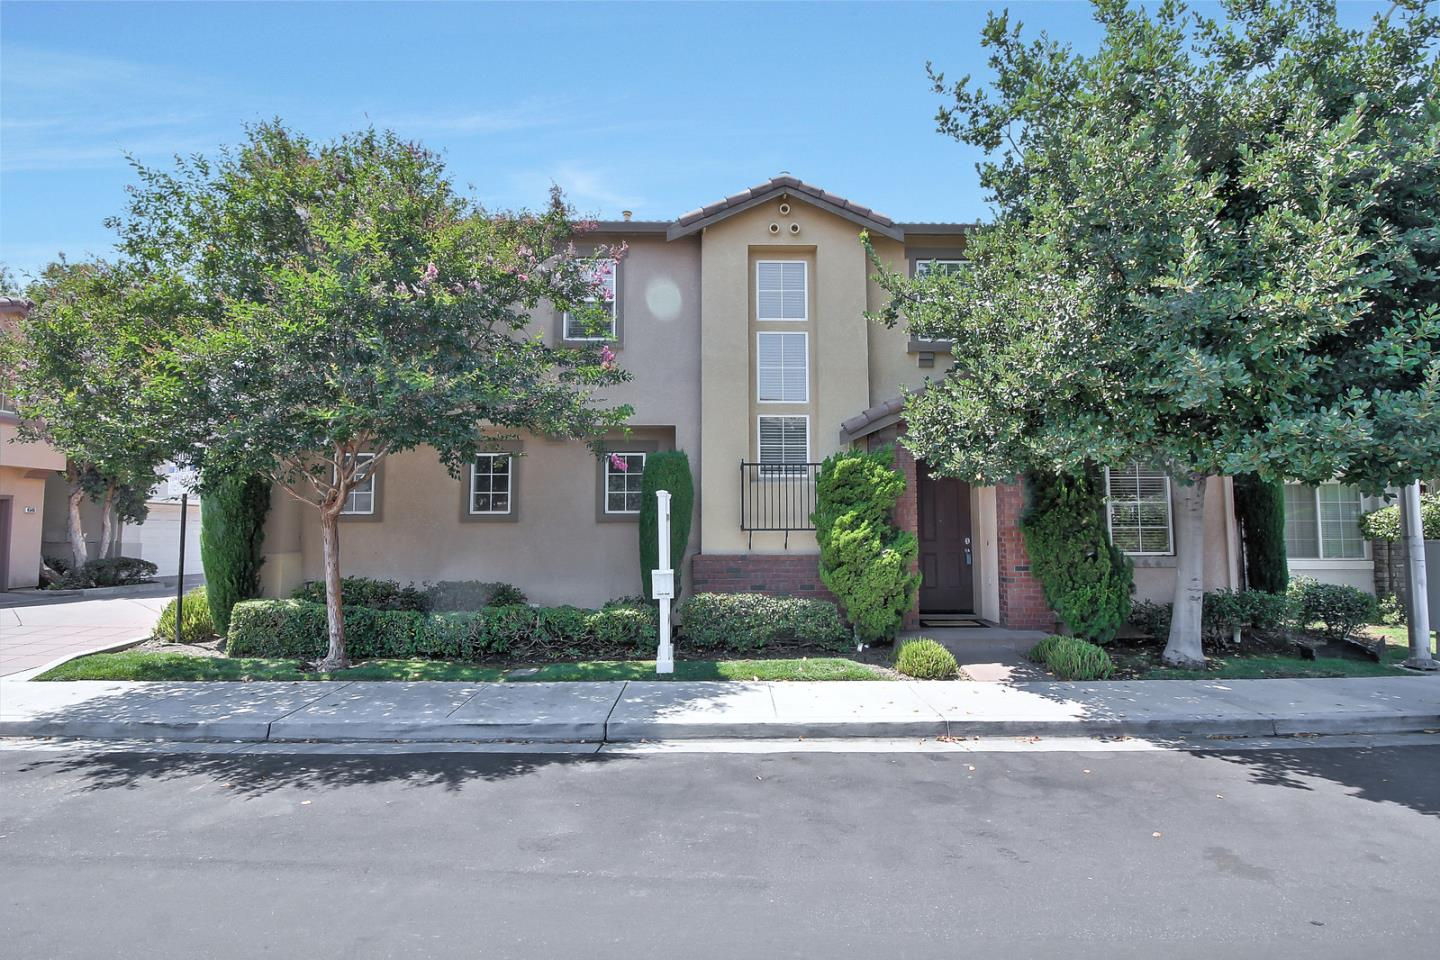 Additional photo for property listing at 4560 Cheeney Street  Santa Clara, Californie 95054 États-Unis